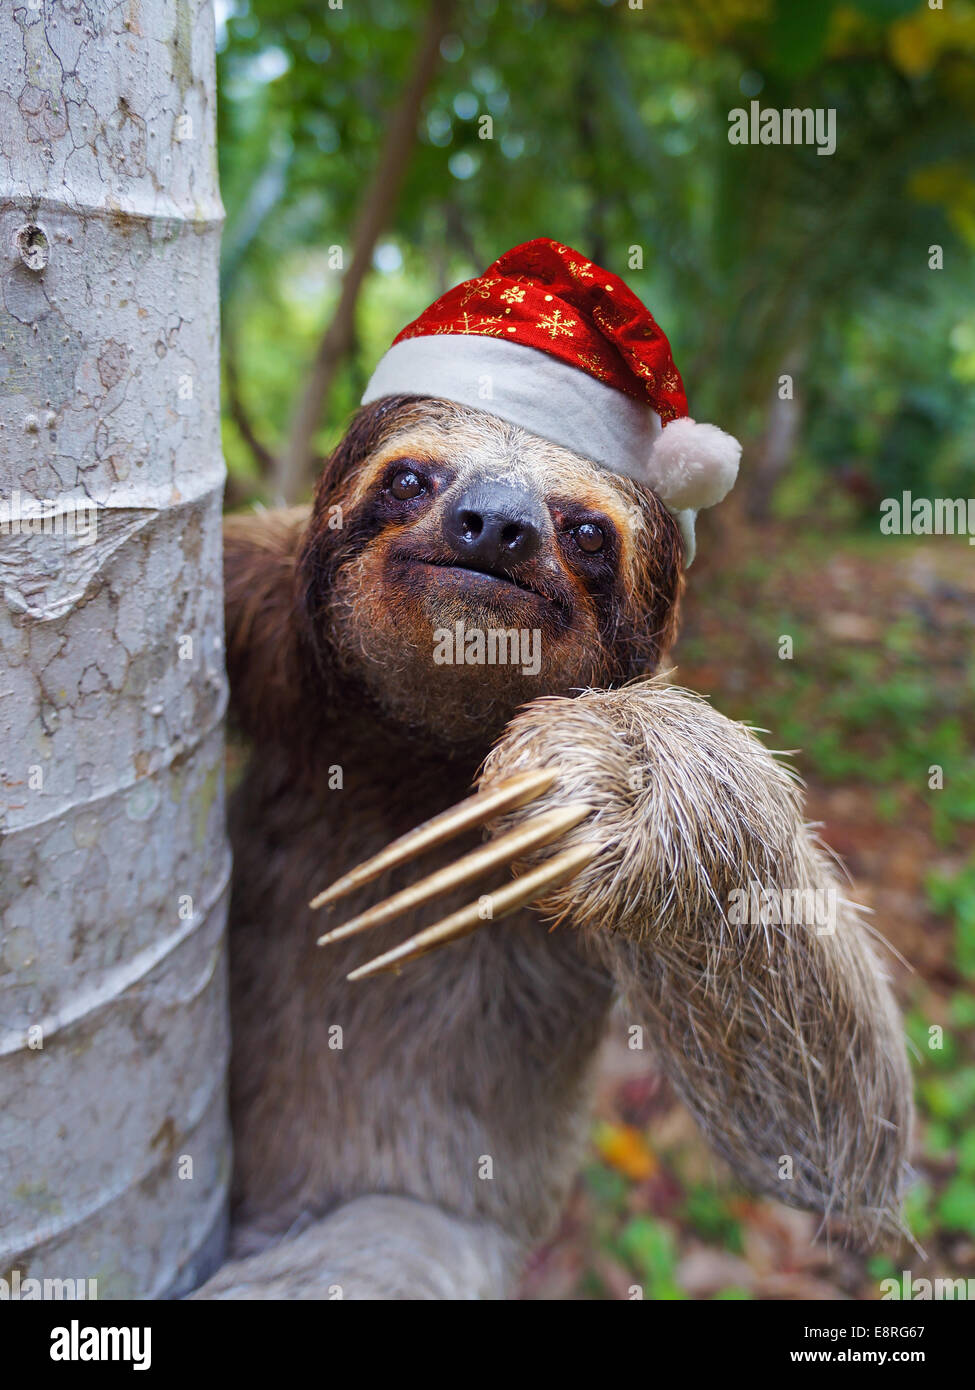 Christmas animal, portrait of a sloth wearing a santa hat - Stock Image